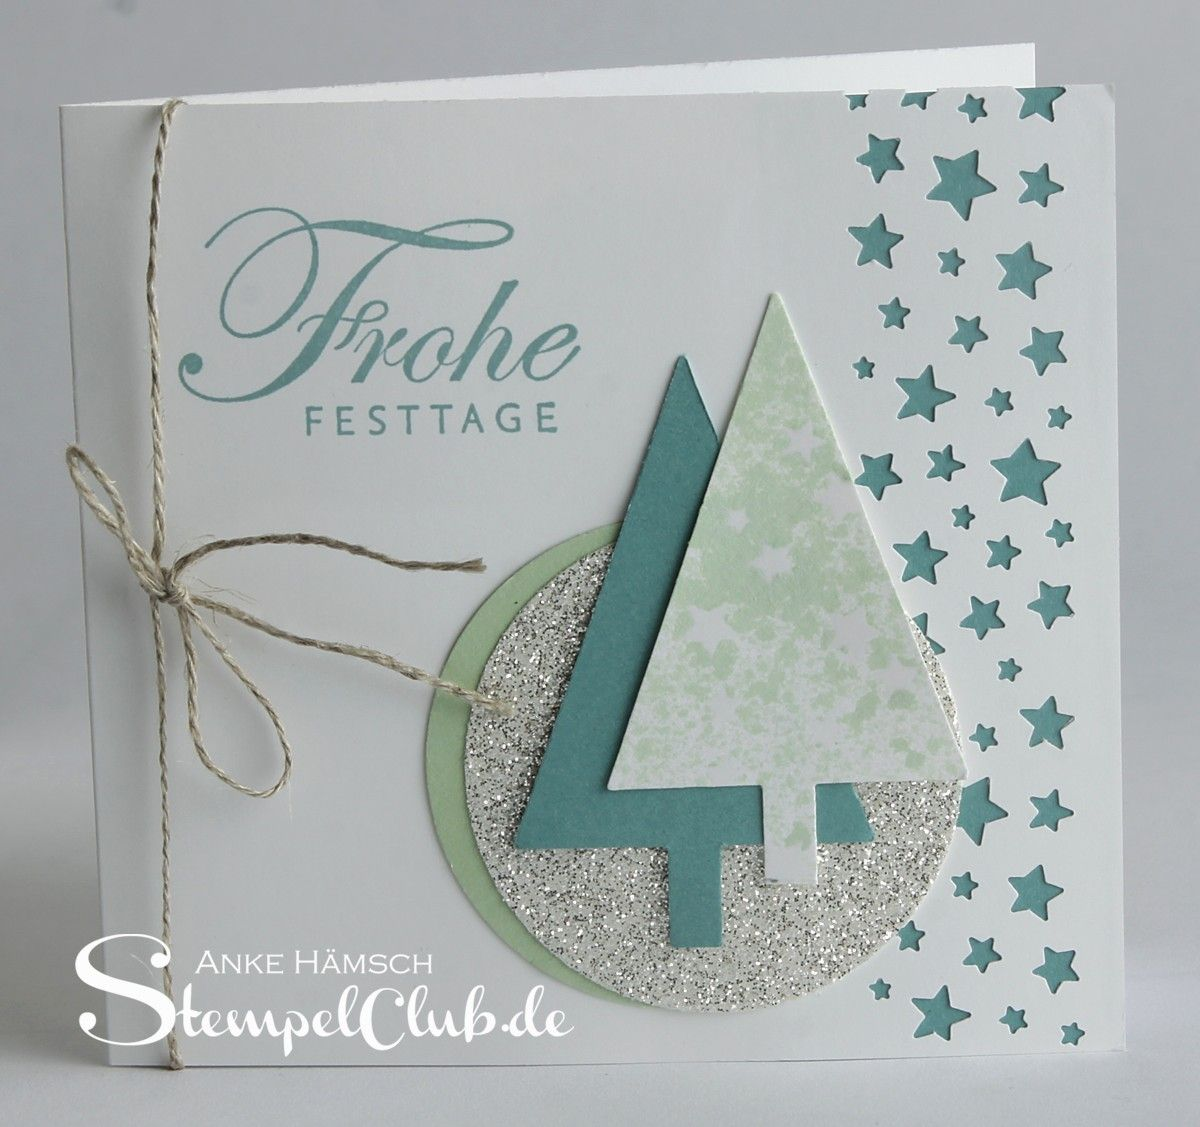 Stempelclub Leipzig - mit Stampin' Up!® Weihnachtskarte, Christmas, Christmas tree, Festival, Sternenstanze #stampinup!cards